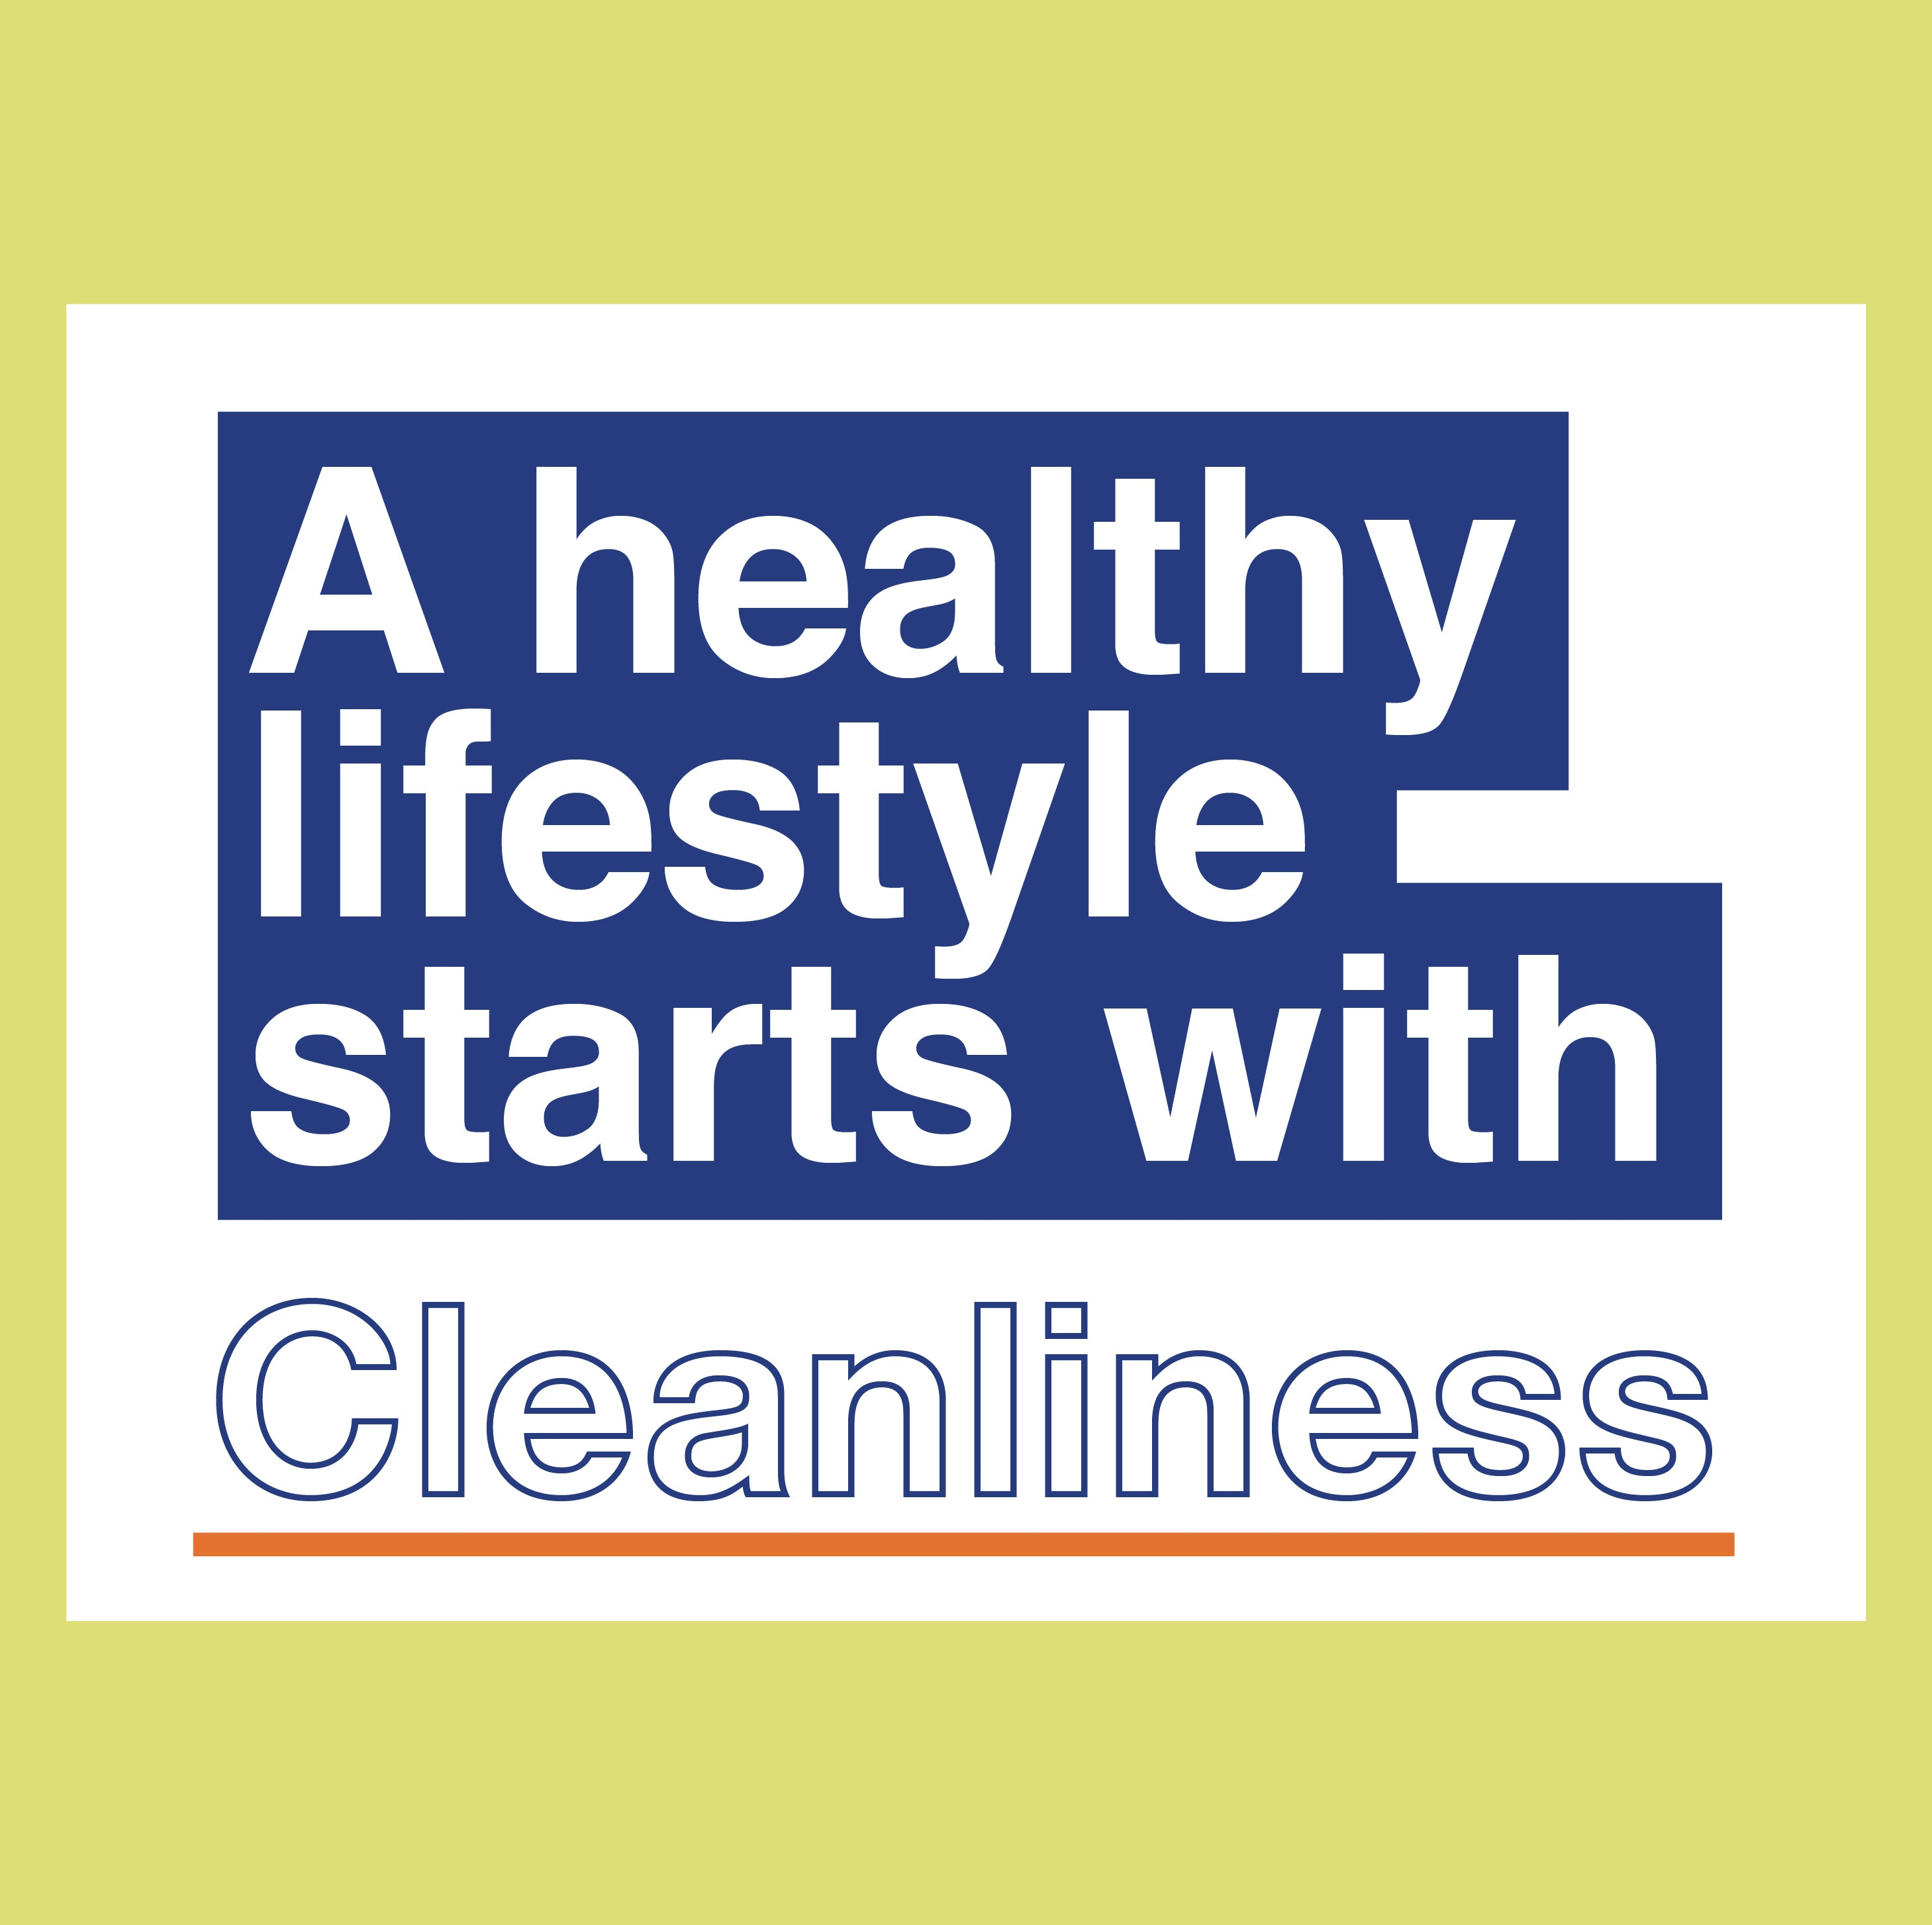 A healthy lifestyle starts with Cleanliness